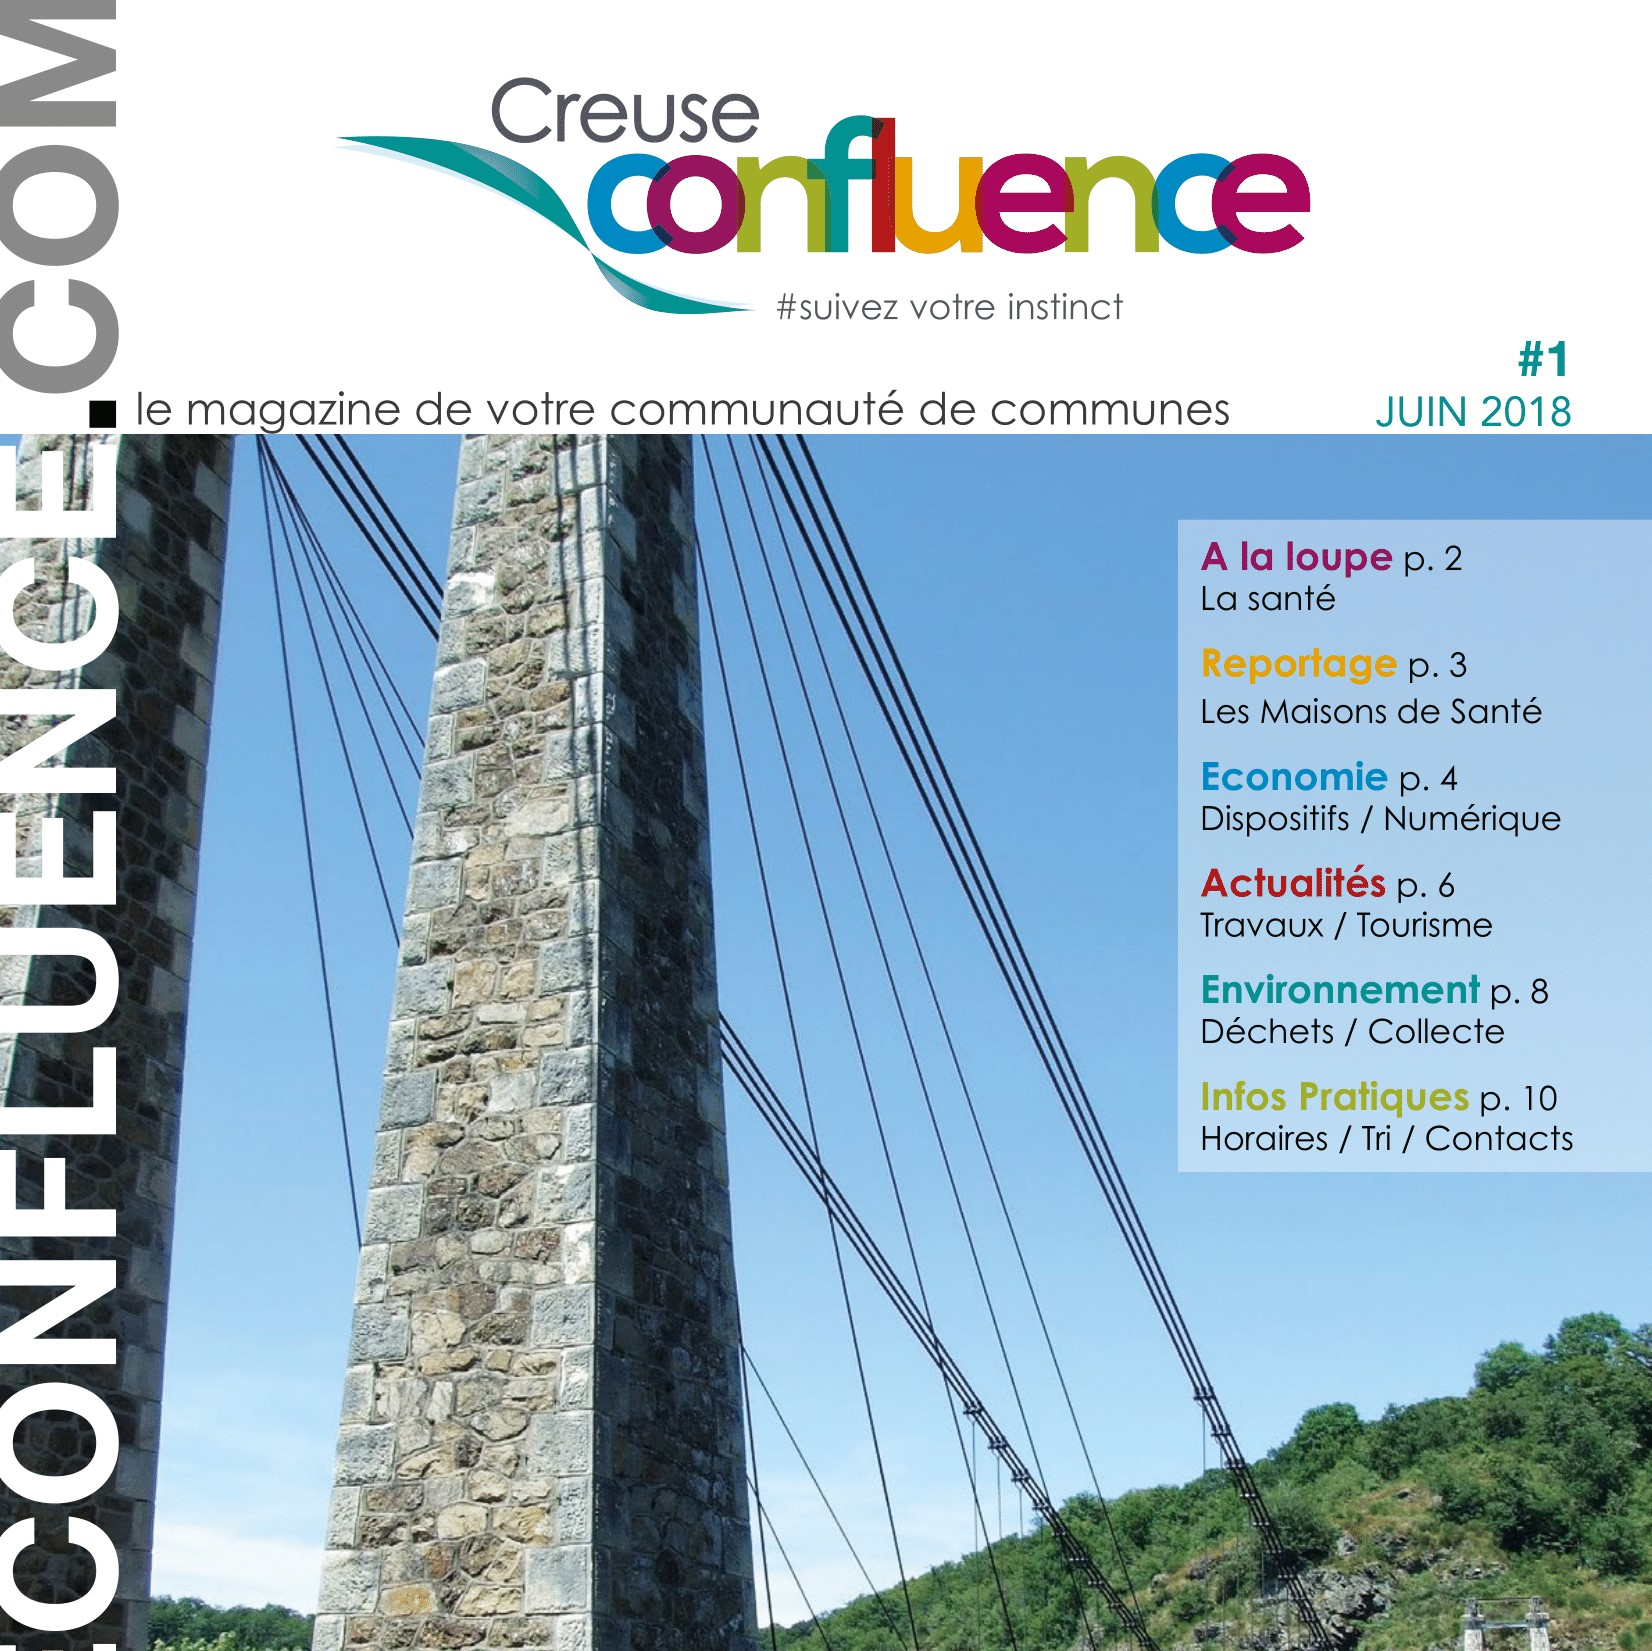 Magazine creuse confluence N°1